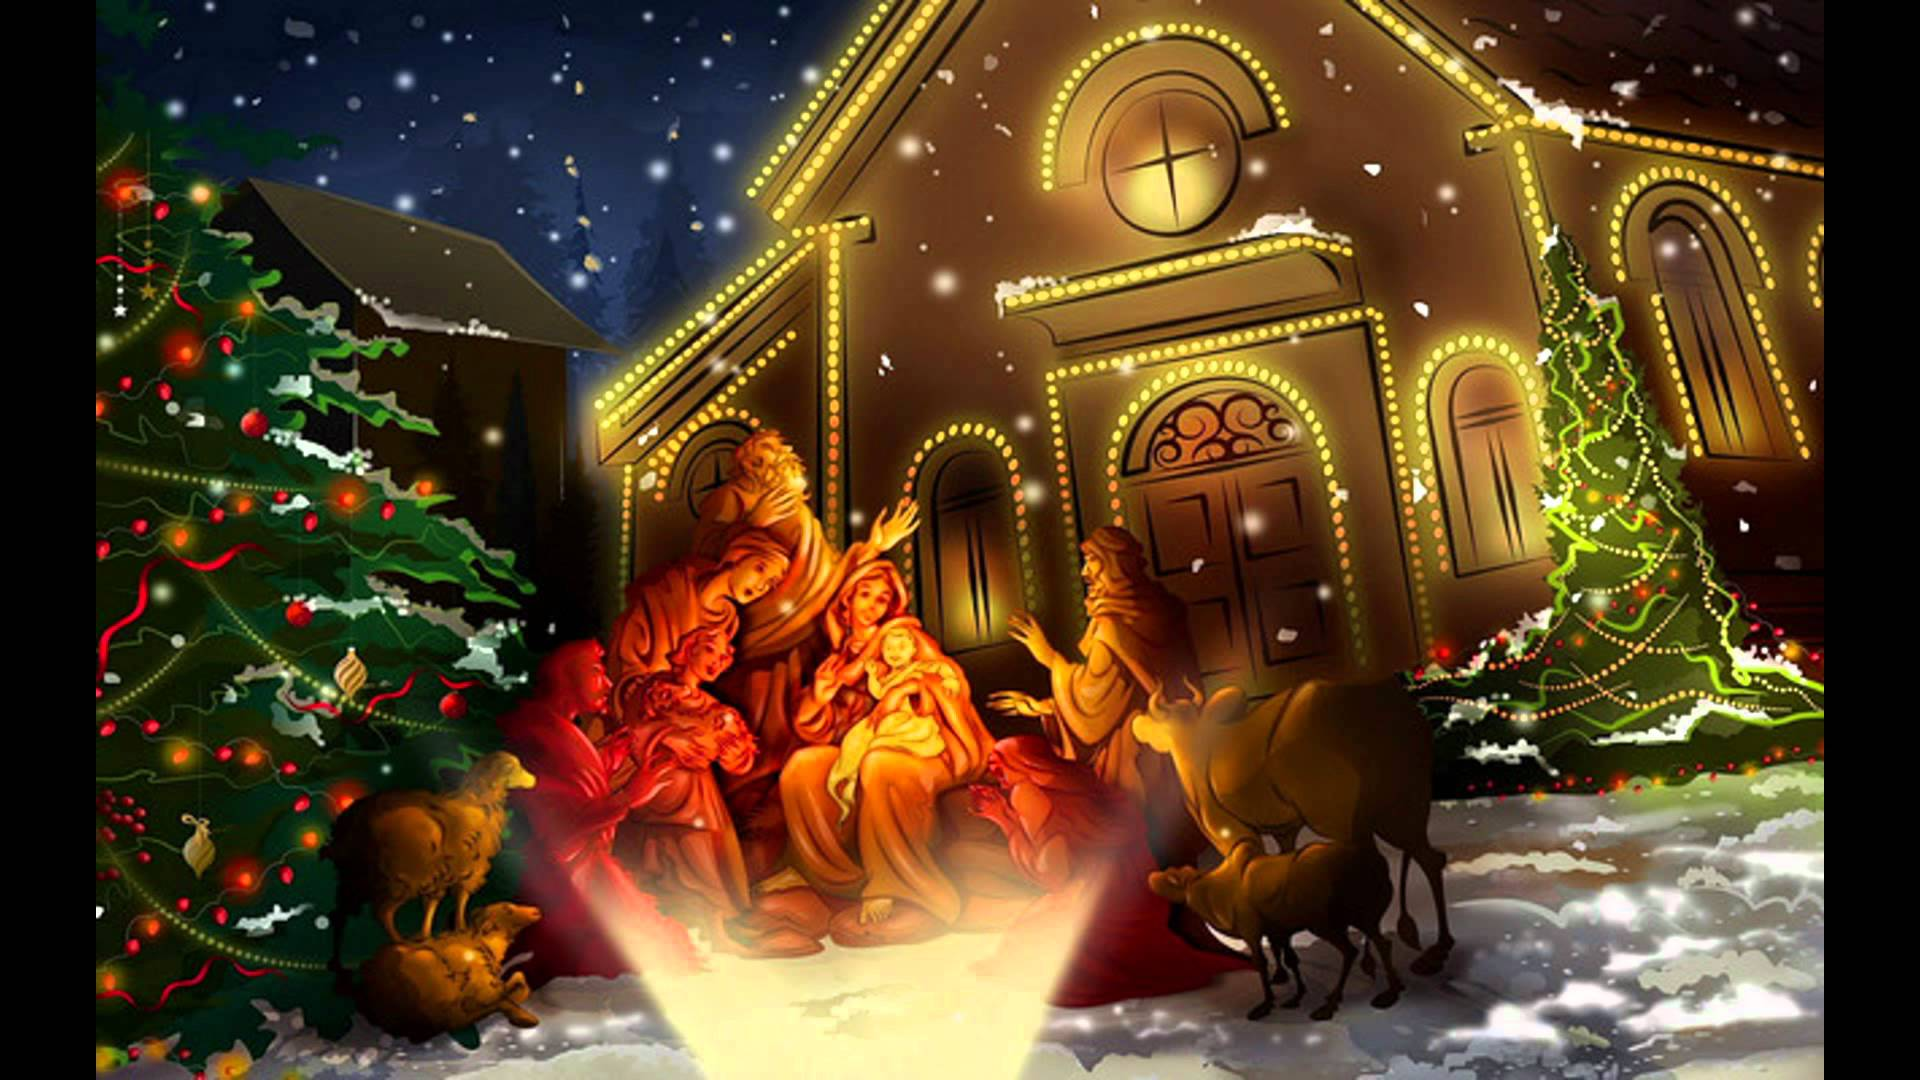 jesus wallpapers  photos and desktop backgrounds up to 8k